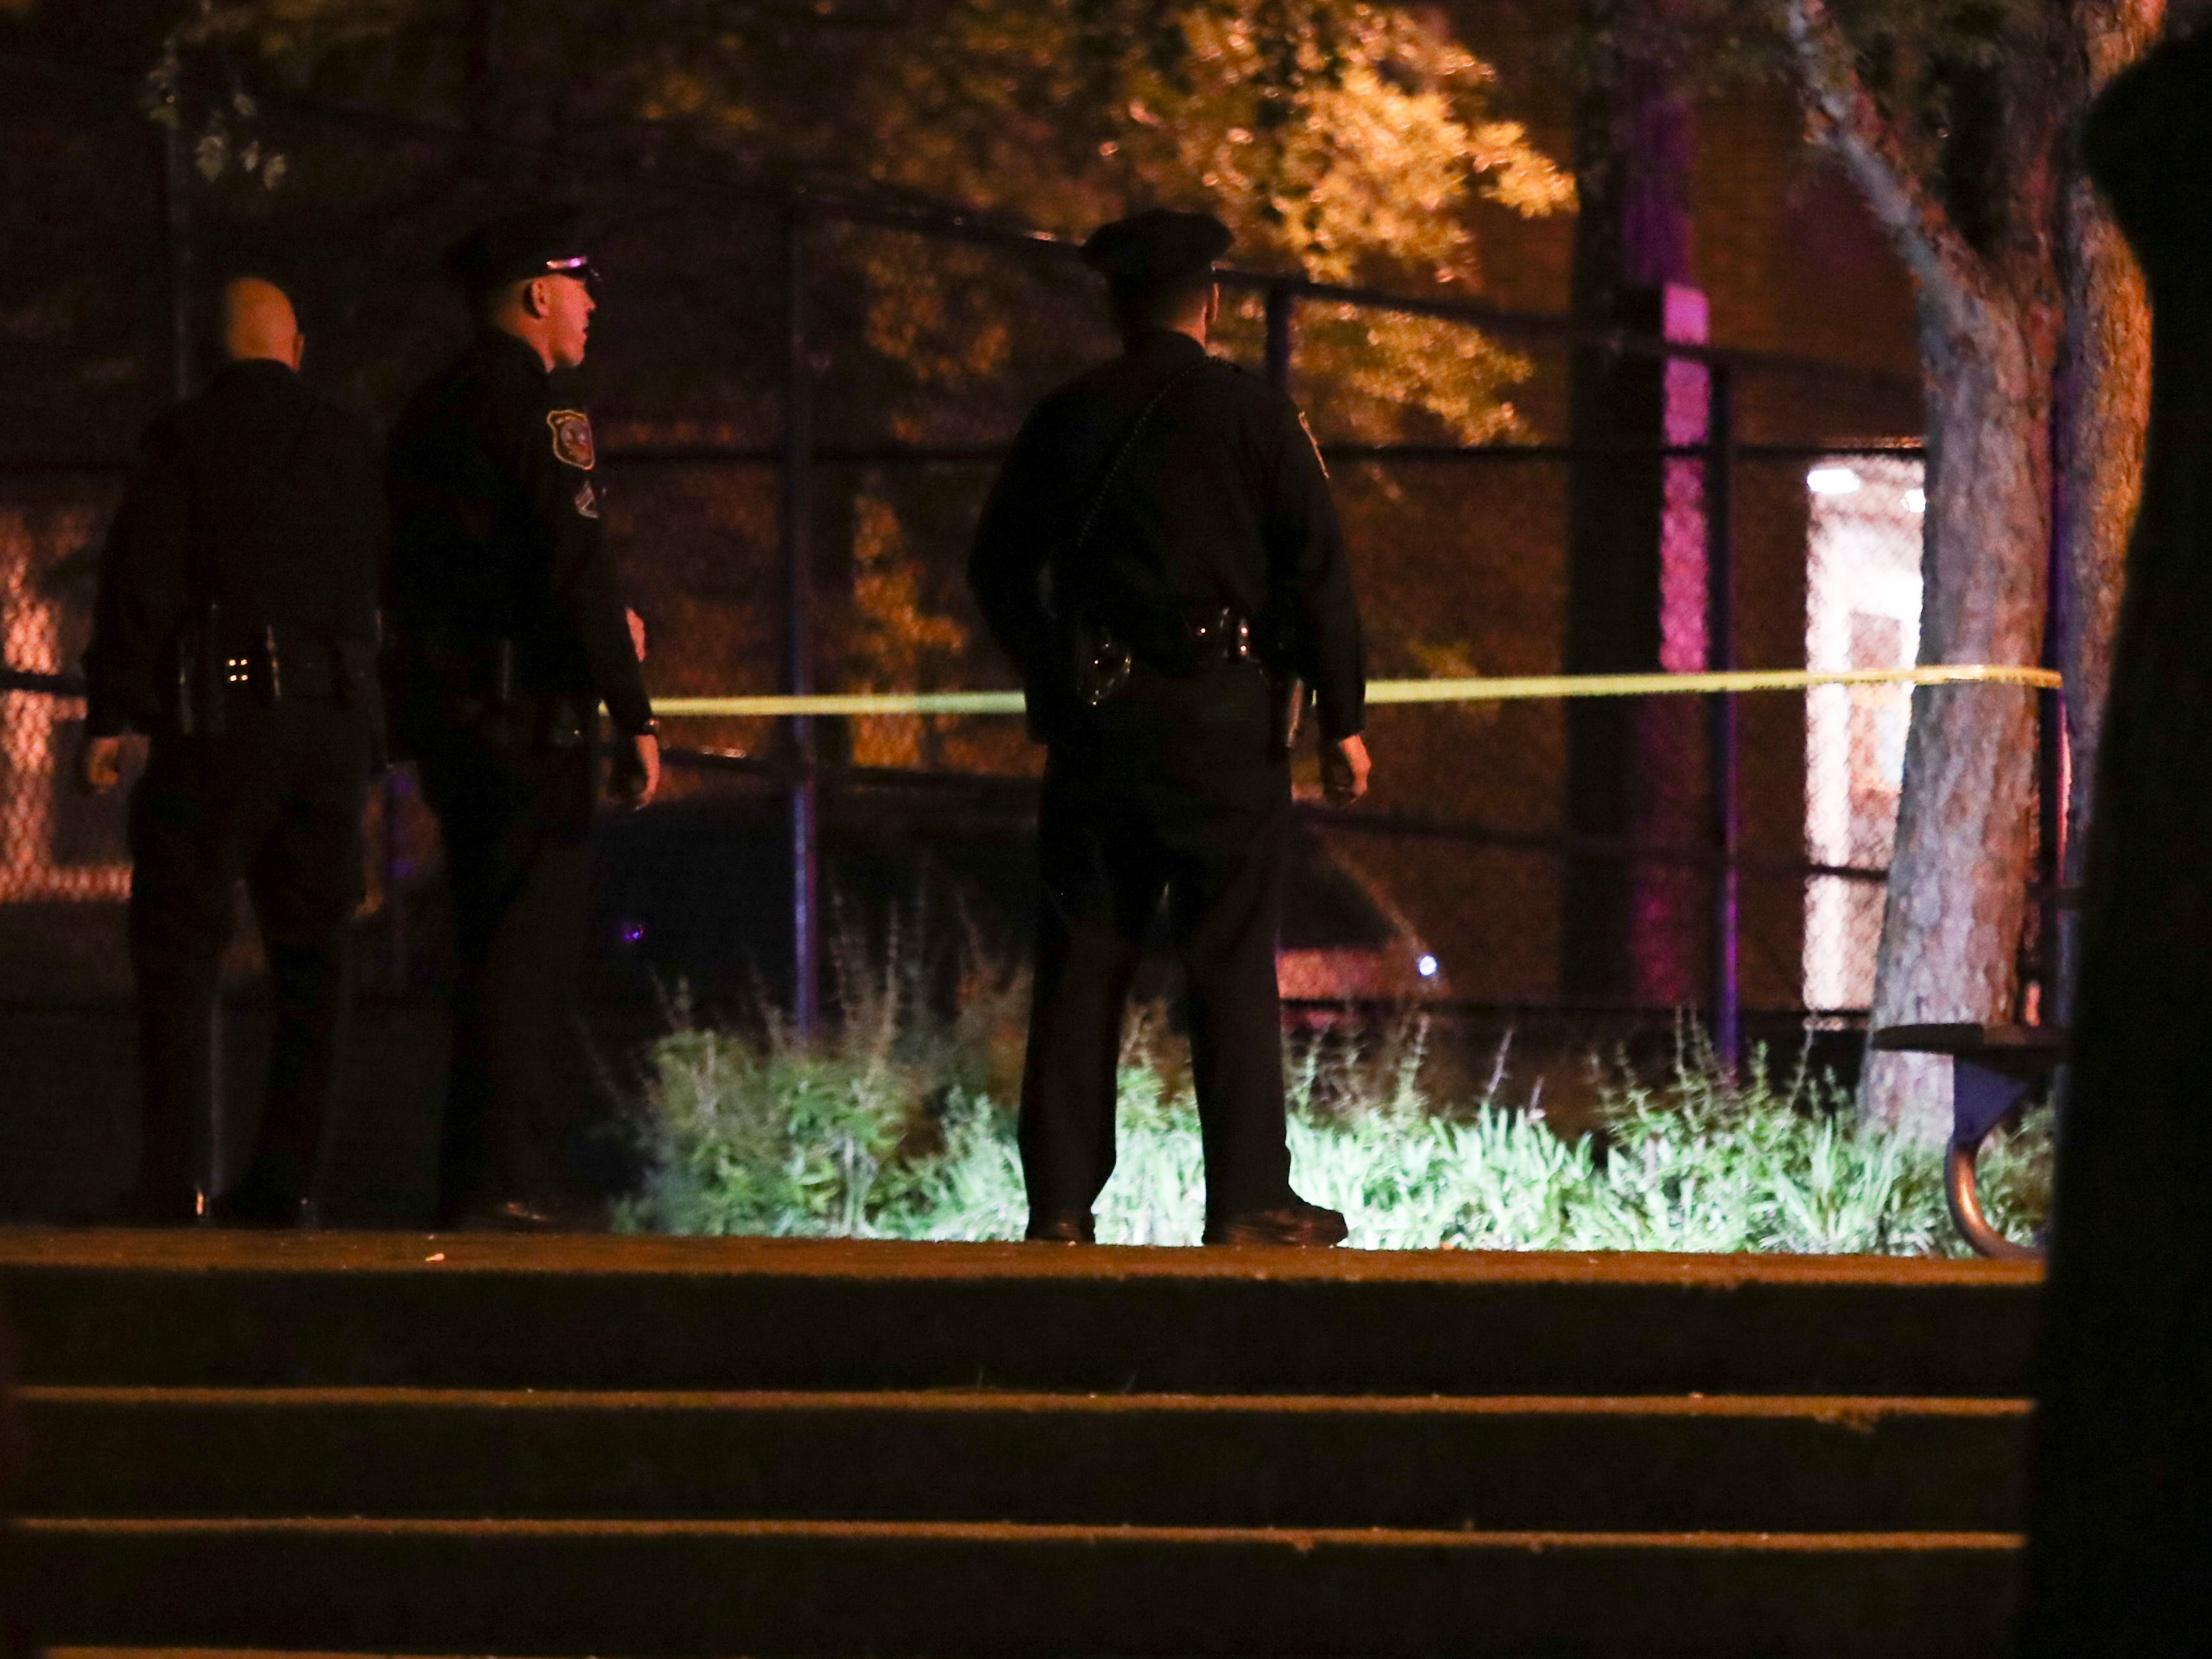 Wilmington police investigate in the Helen Chambers Park on N. Madison Street after a shooting reported about 10 p.m. Thursday. Police had taped off Madison Street from W. 4th Street to W. 7th Street but concentrated in the 600 block along the park.